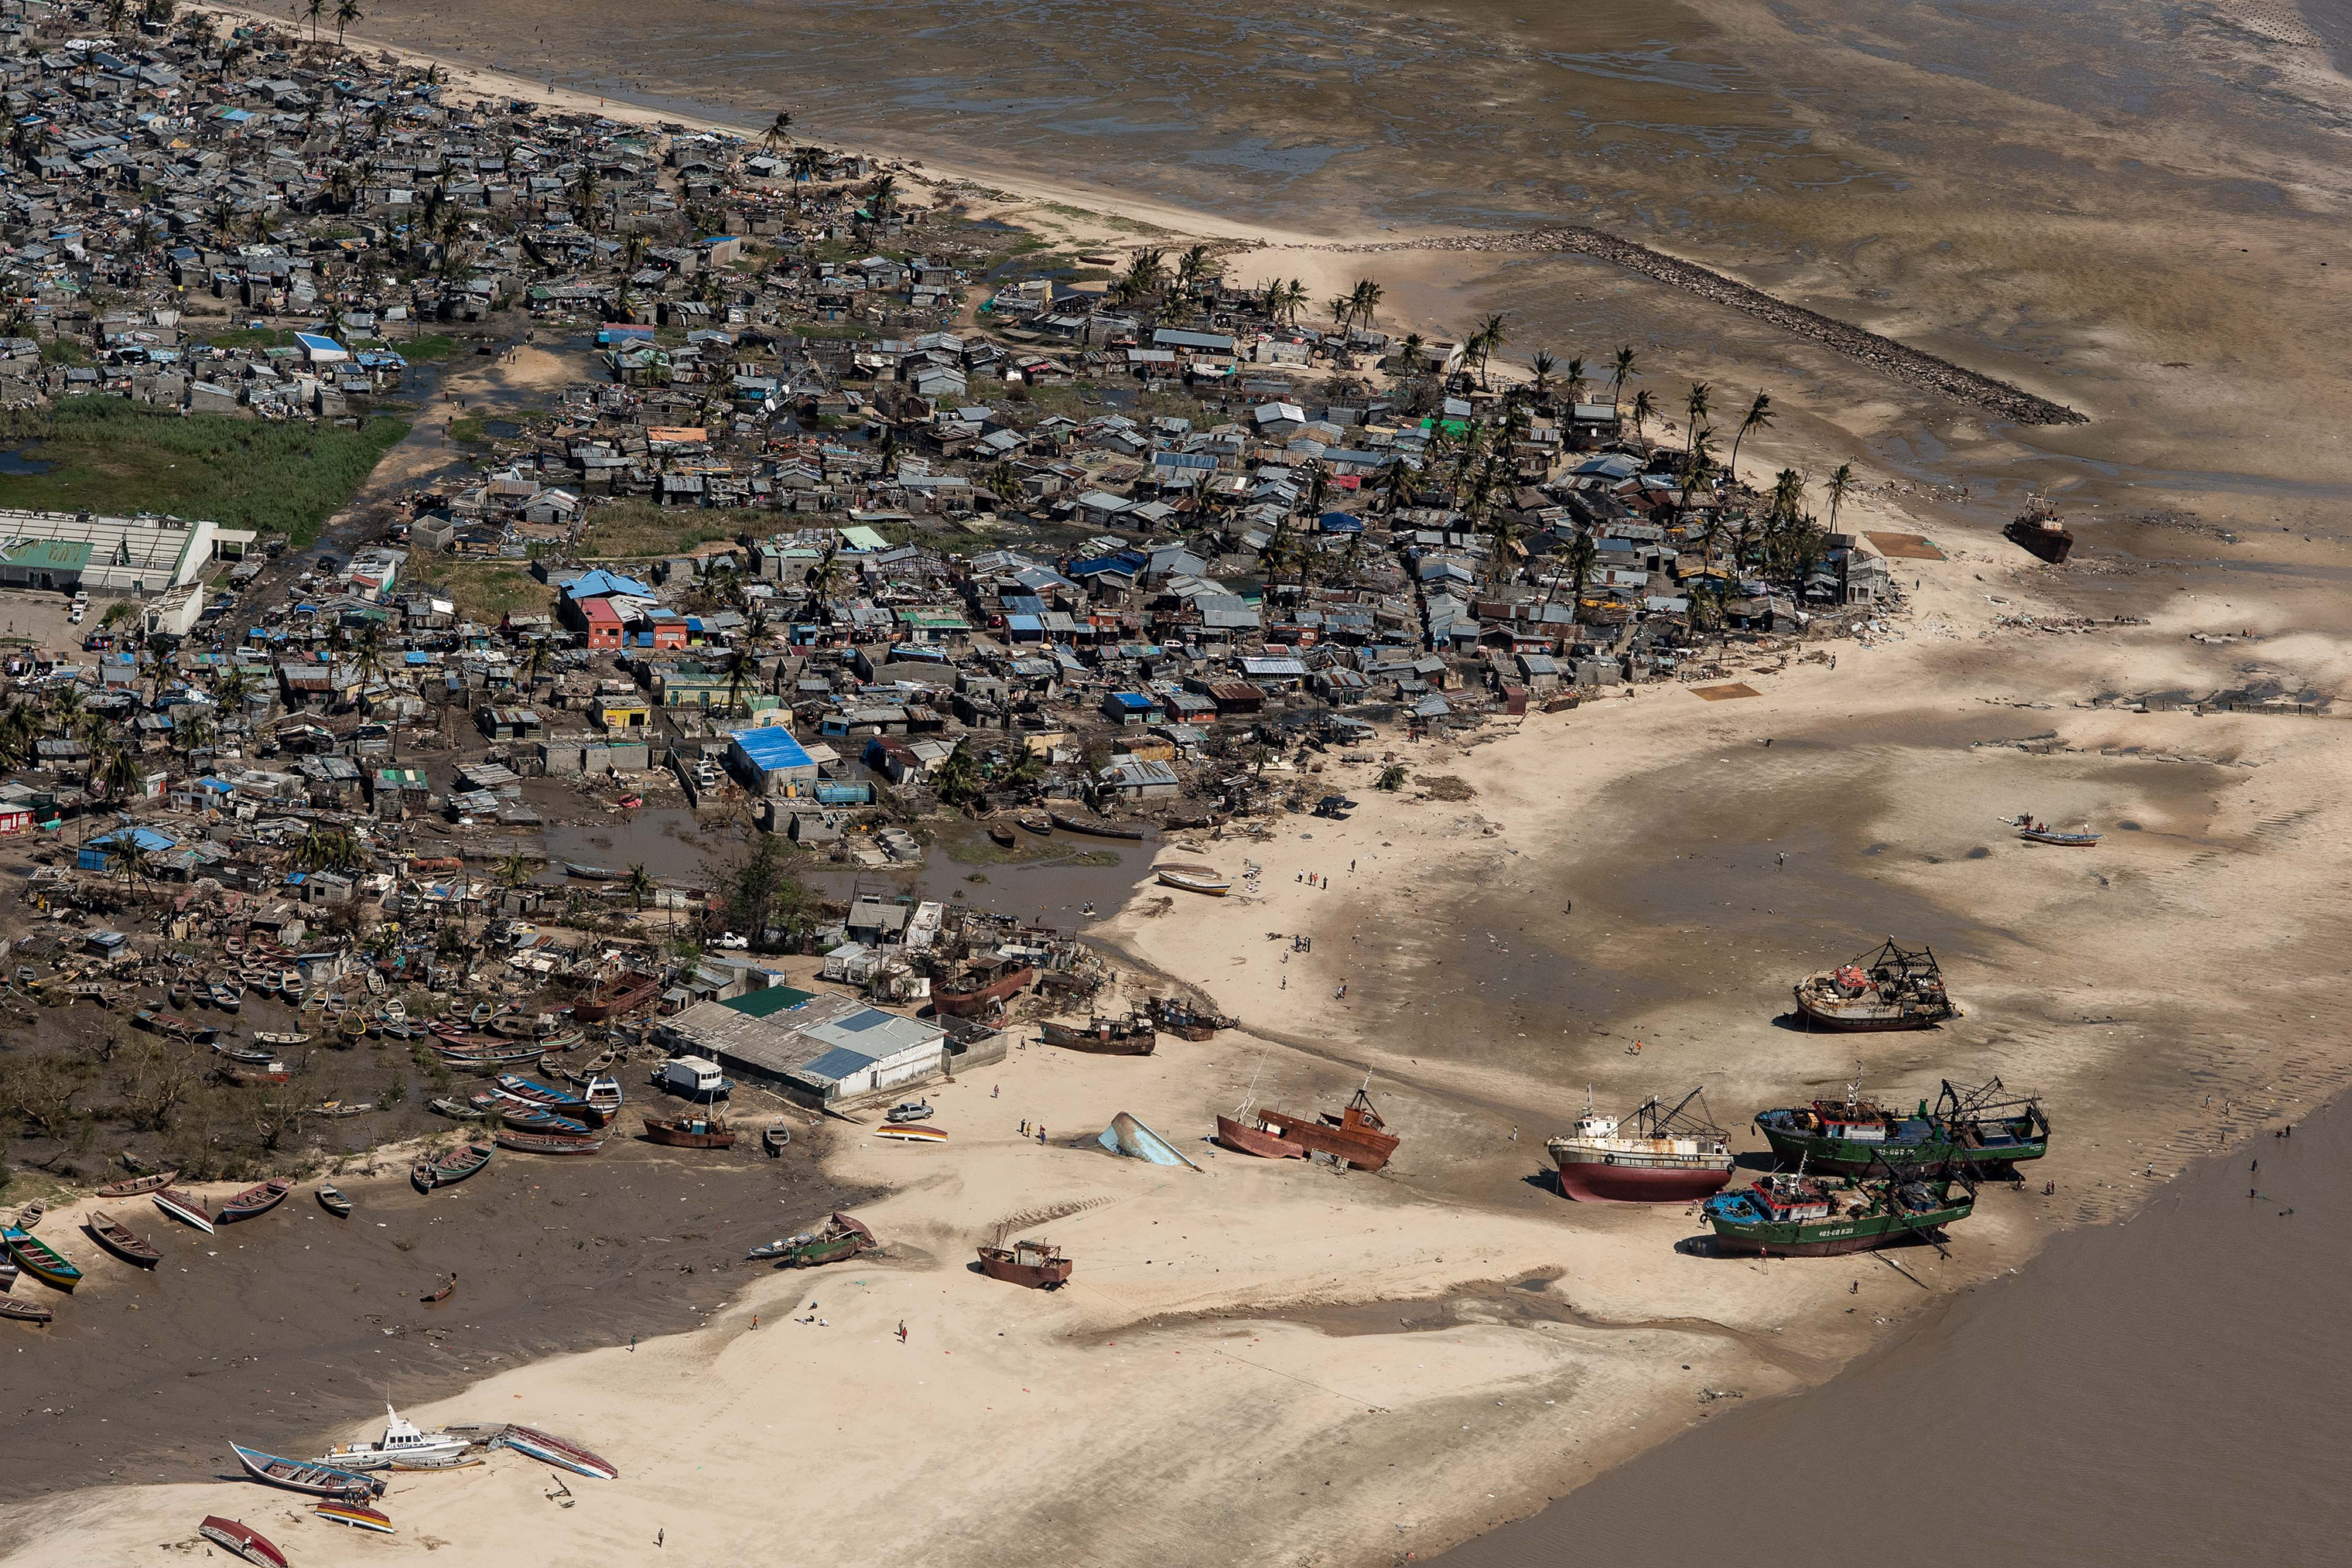 An aerial view of a neighborhood affected by Cyclone Idai on March 24, 2019 in Beira, Mozambique.